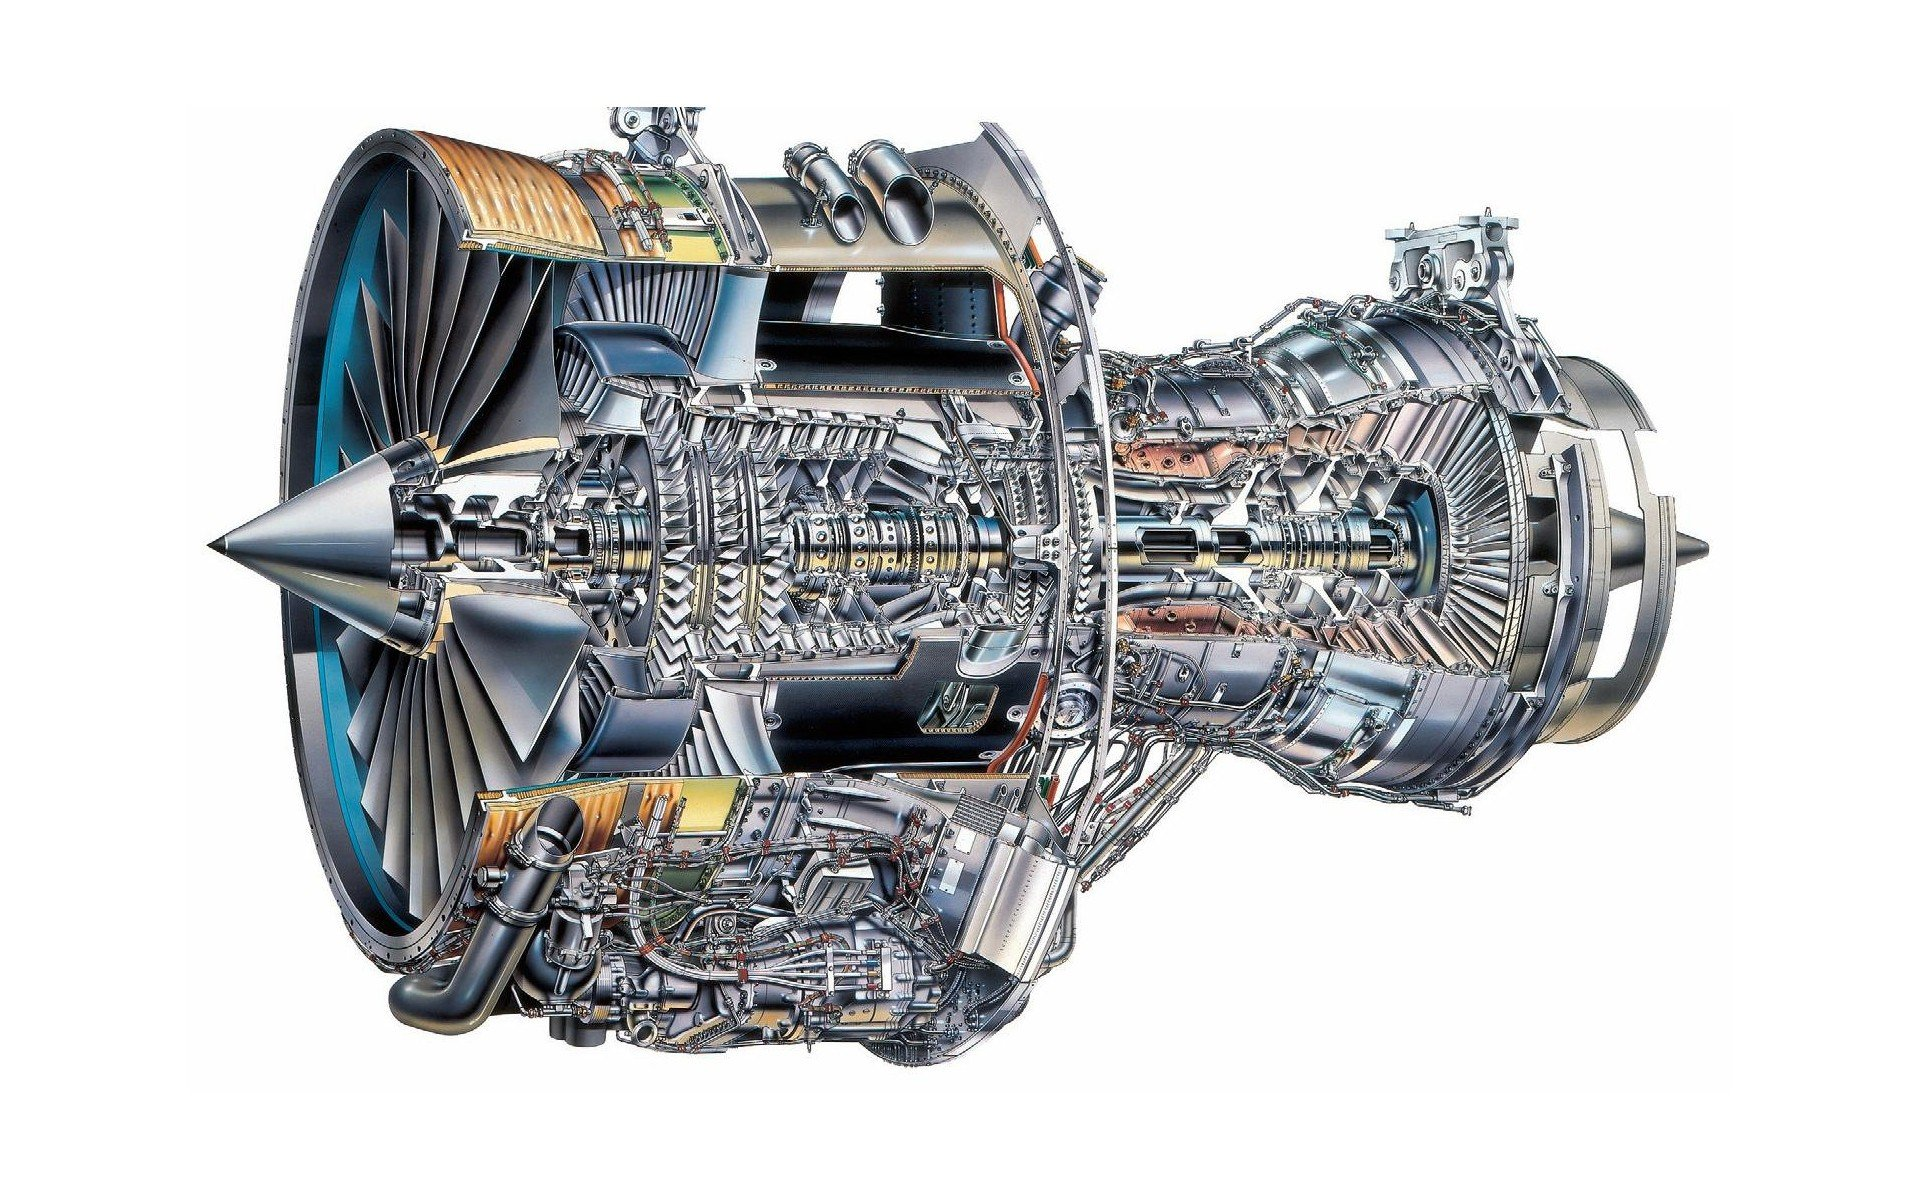 Engines White Background Sketches Engineering Turbine Gears on Rolls Royce Turbine Engines